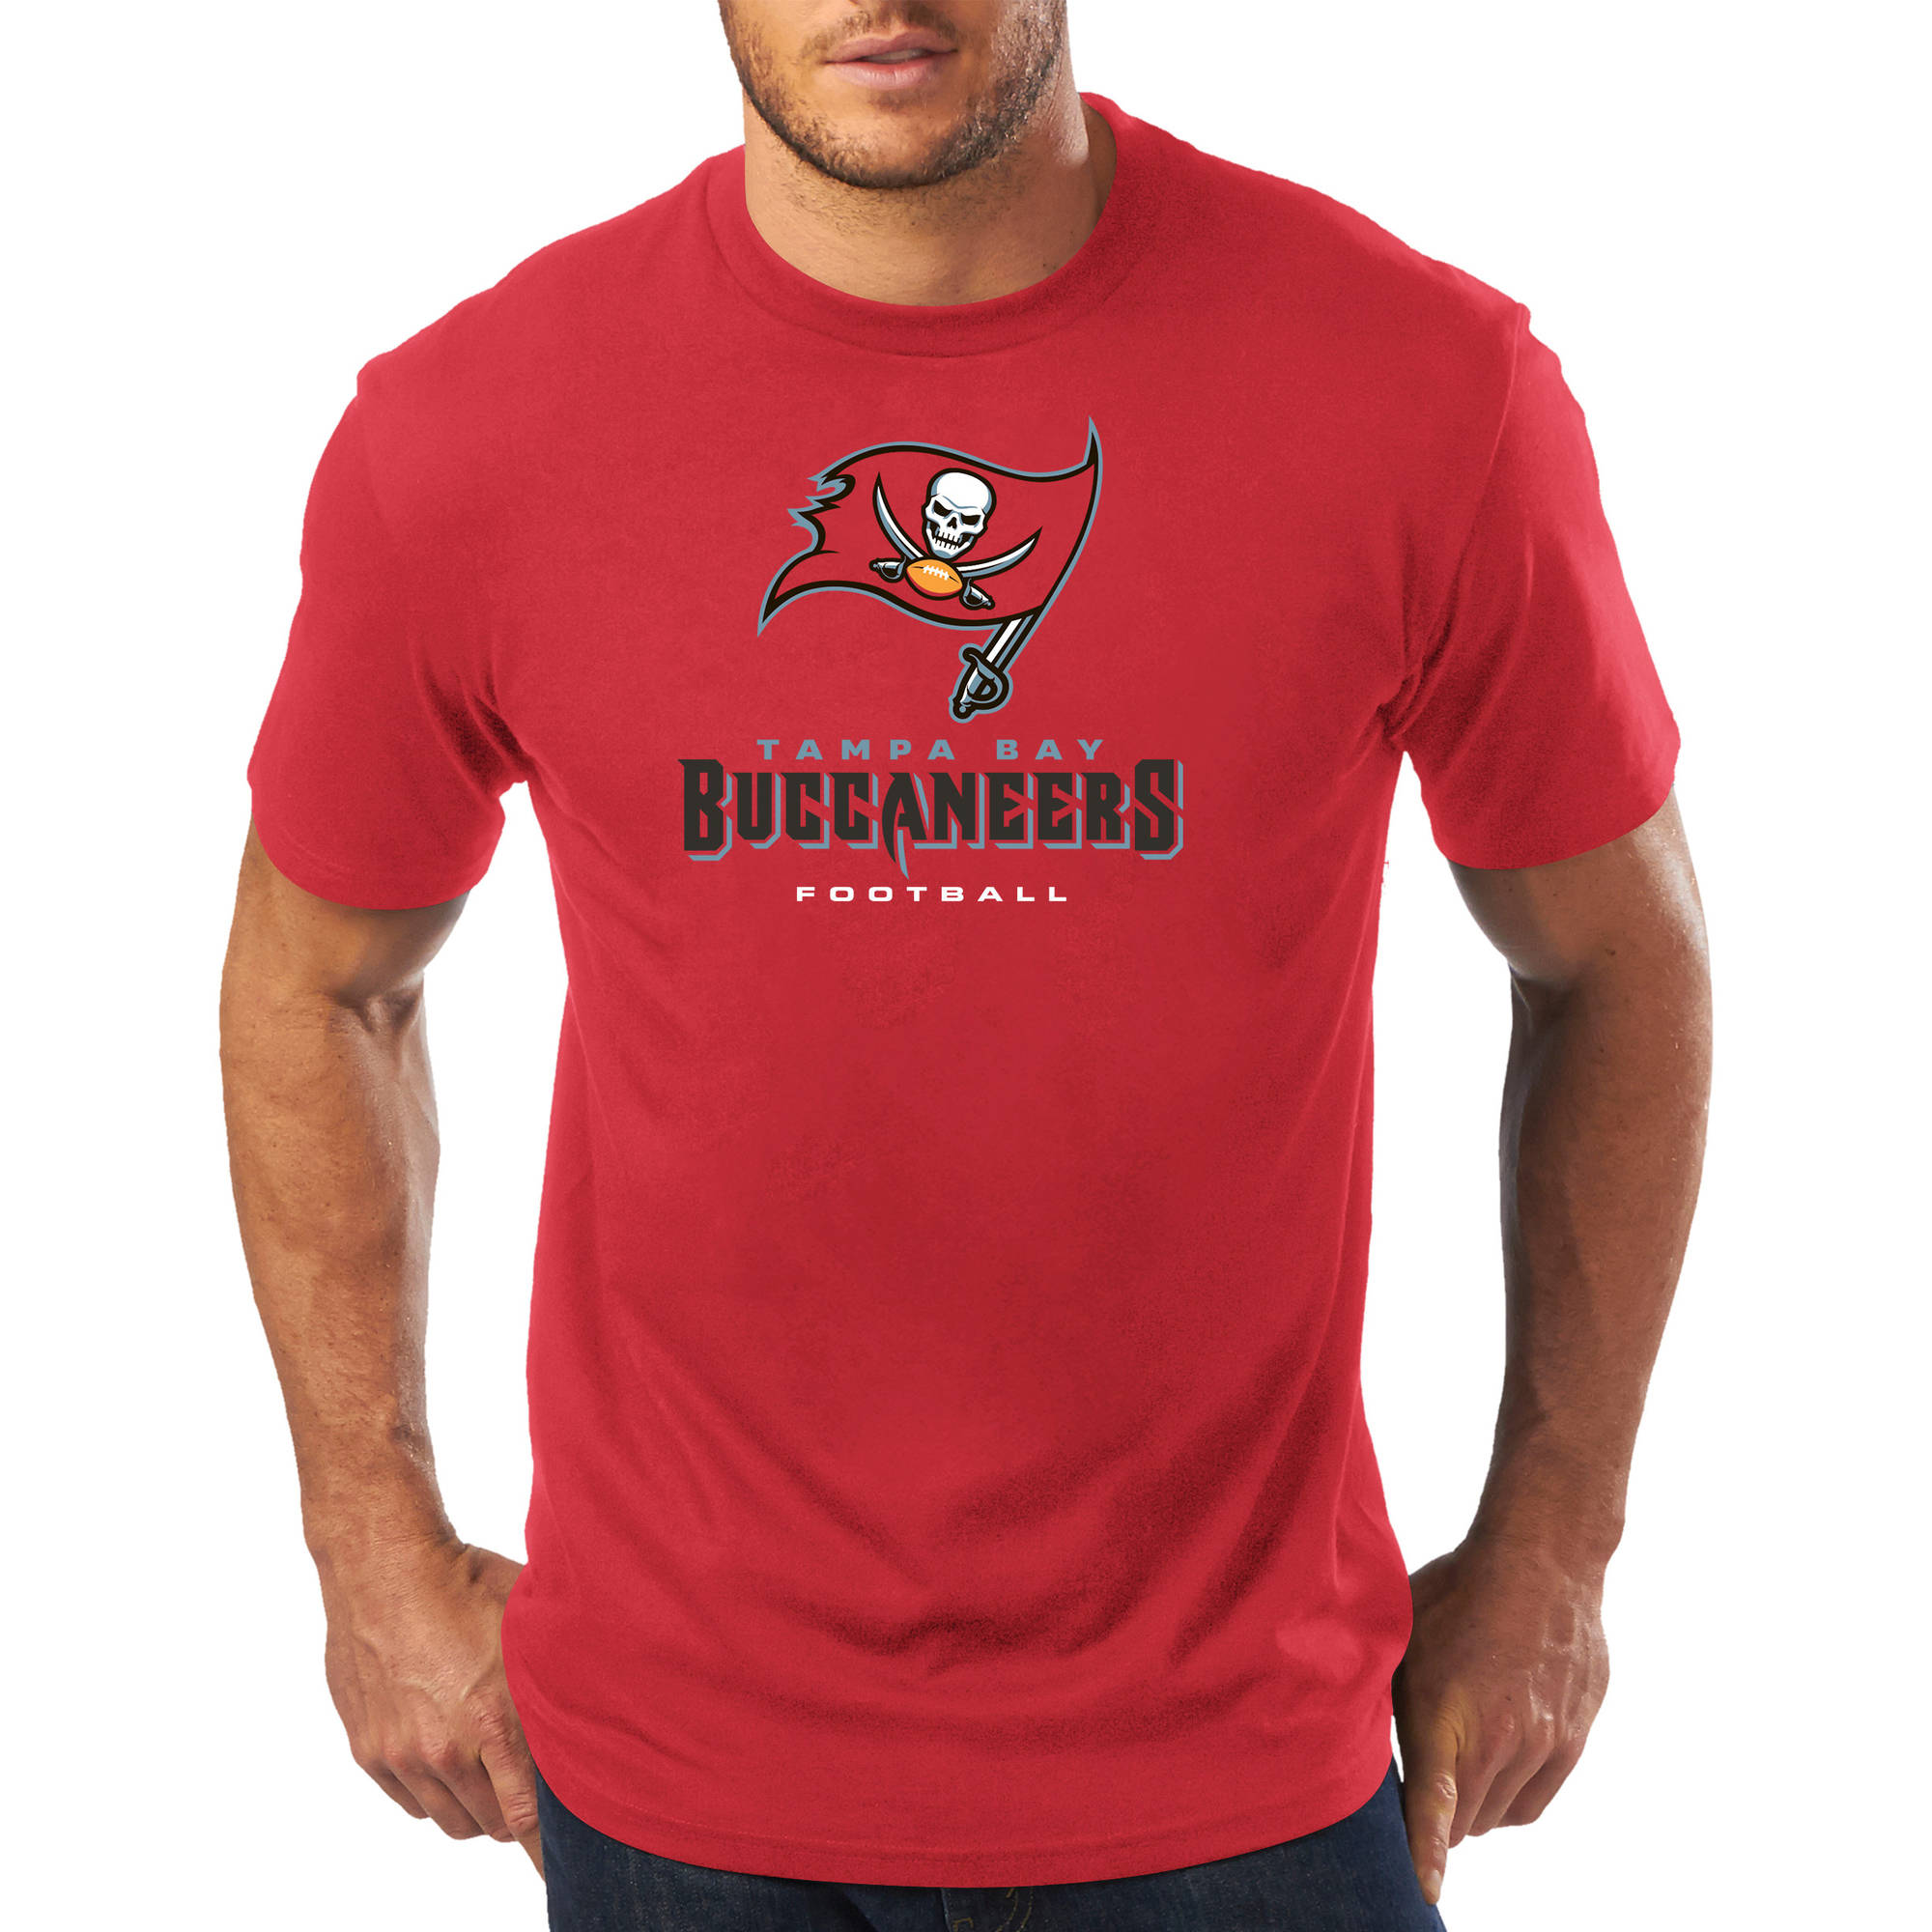 Men's NFL Tampa Bay Buccaneers Short Sleeve Tee